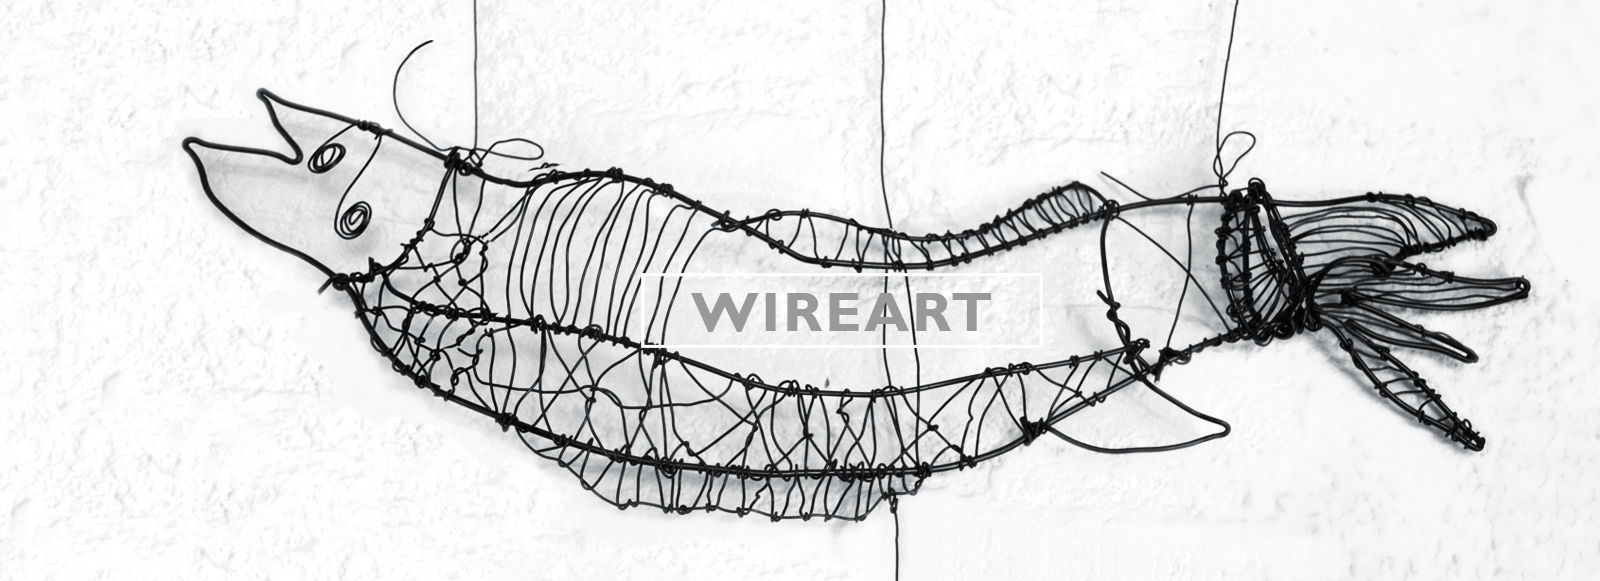 Wire-art-draadkunst-Angeles-Nieto